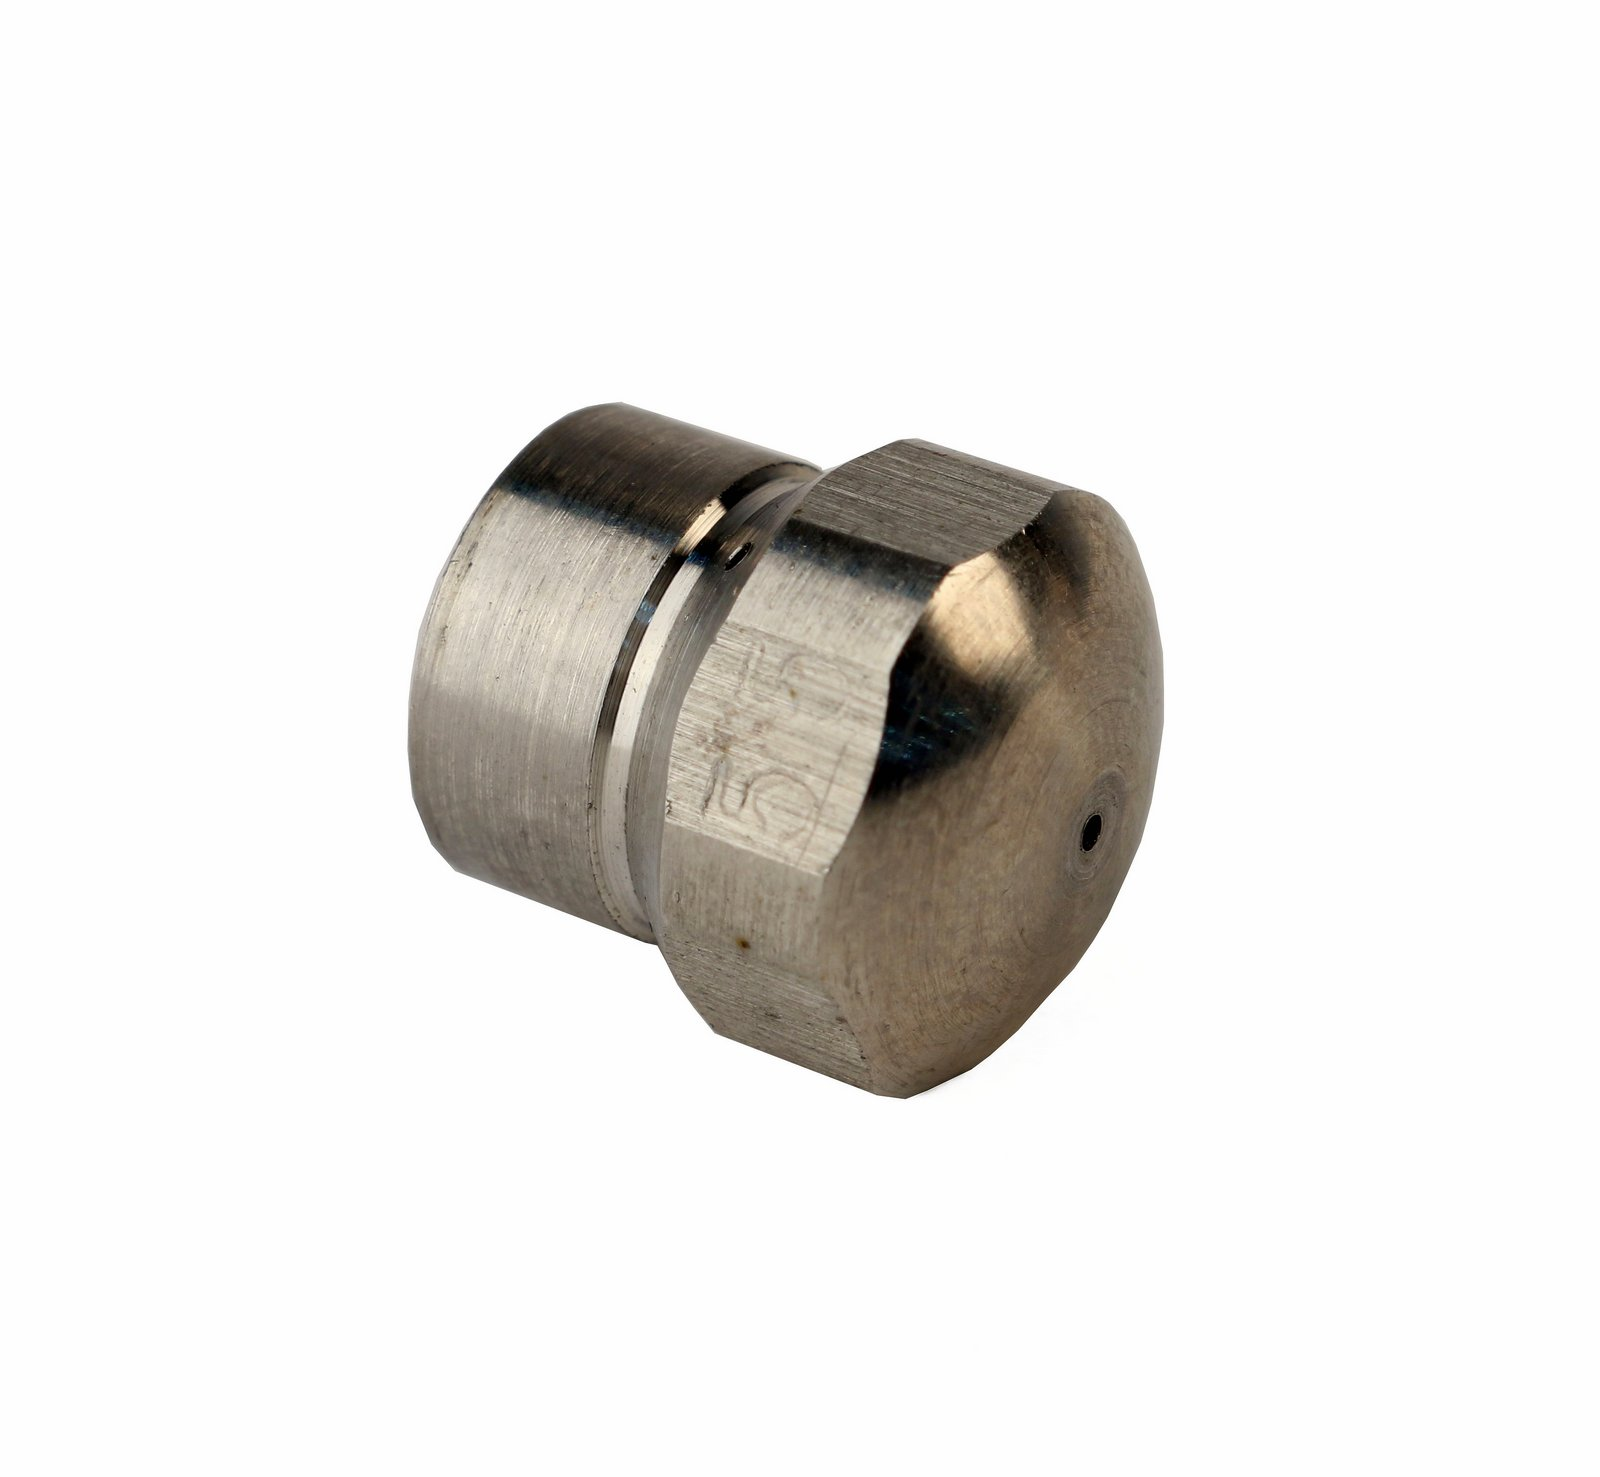 4000 PSI 1//4 Inch Tool Daily Stainless Steel Fixed Sewer Jet Nozzle Button Nose 1//4 Female 5.5 Orifice 1//4